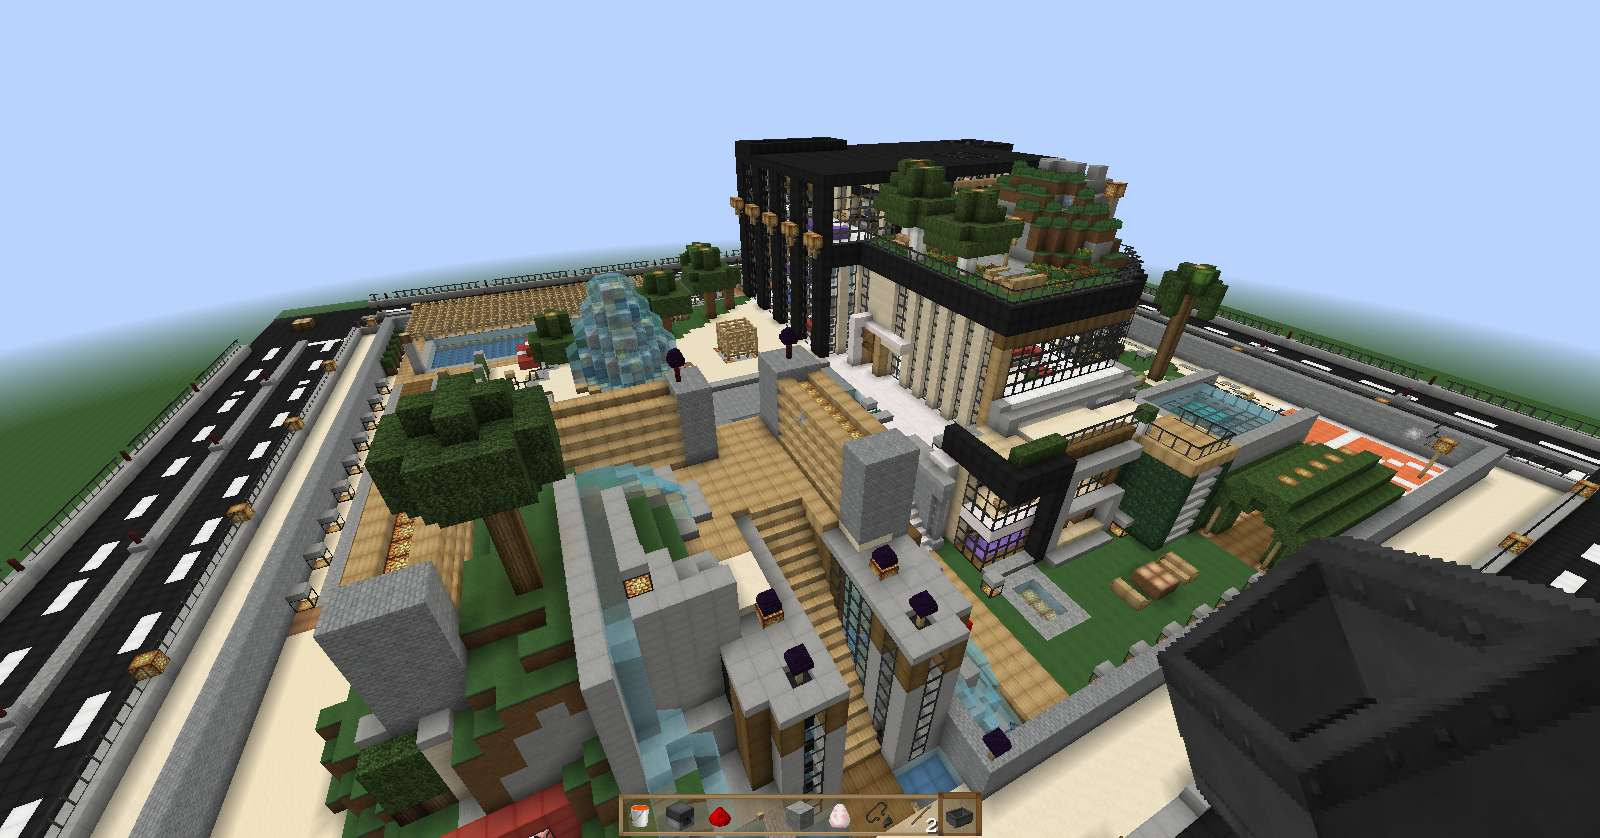 Casa de lujo minecraft minecraft descargas for Minecraft videos casas